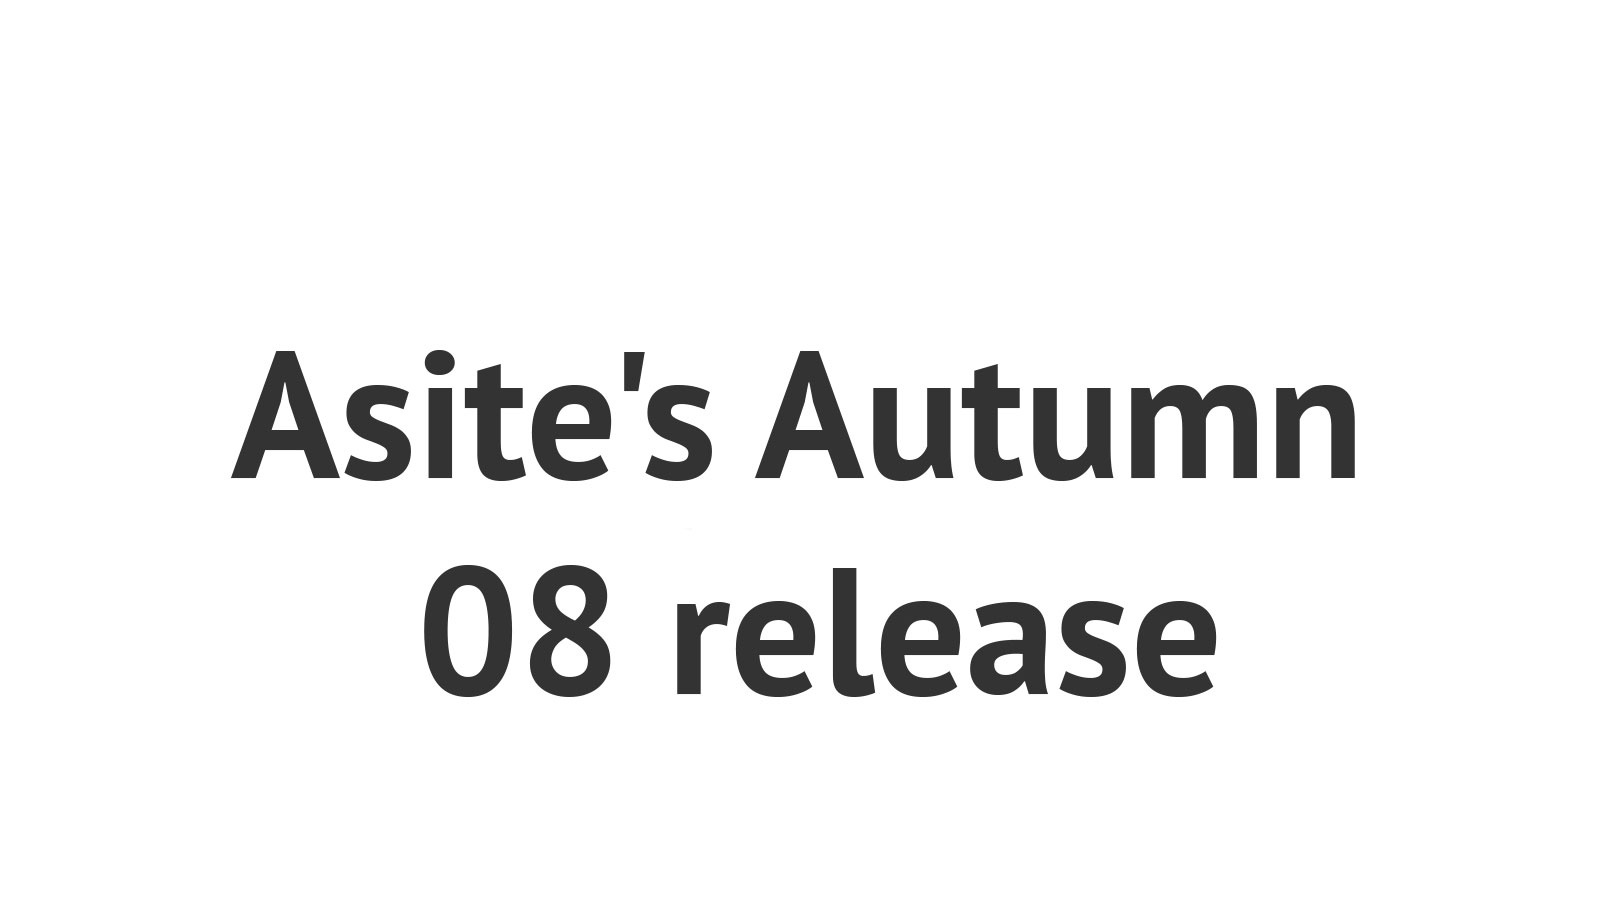 Asite's Autumn 08 release delivers eLearning and further advances in SaaS document management